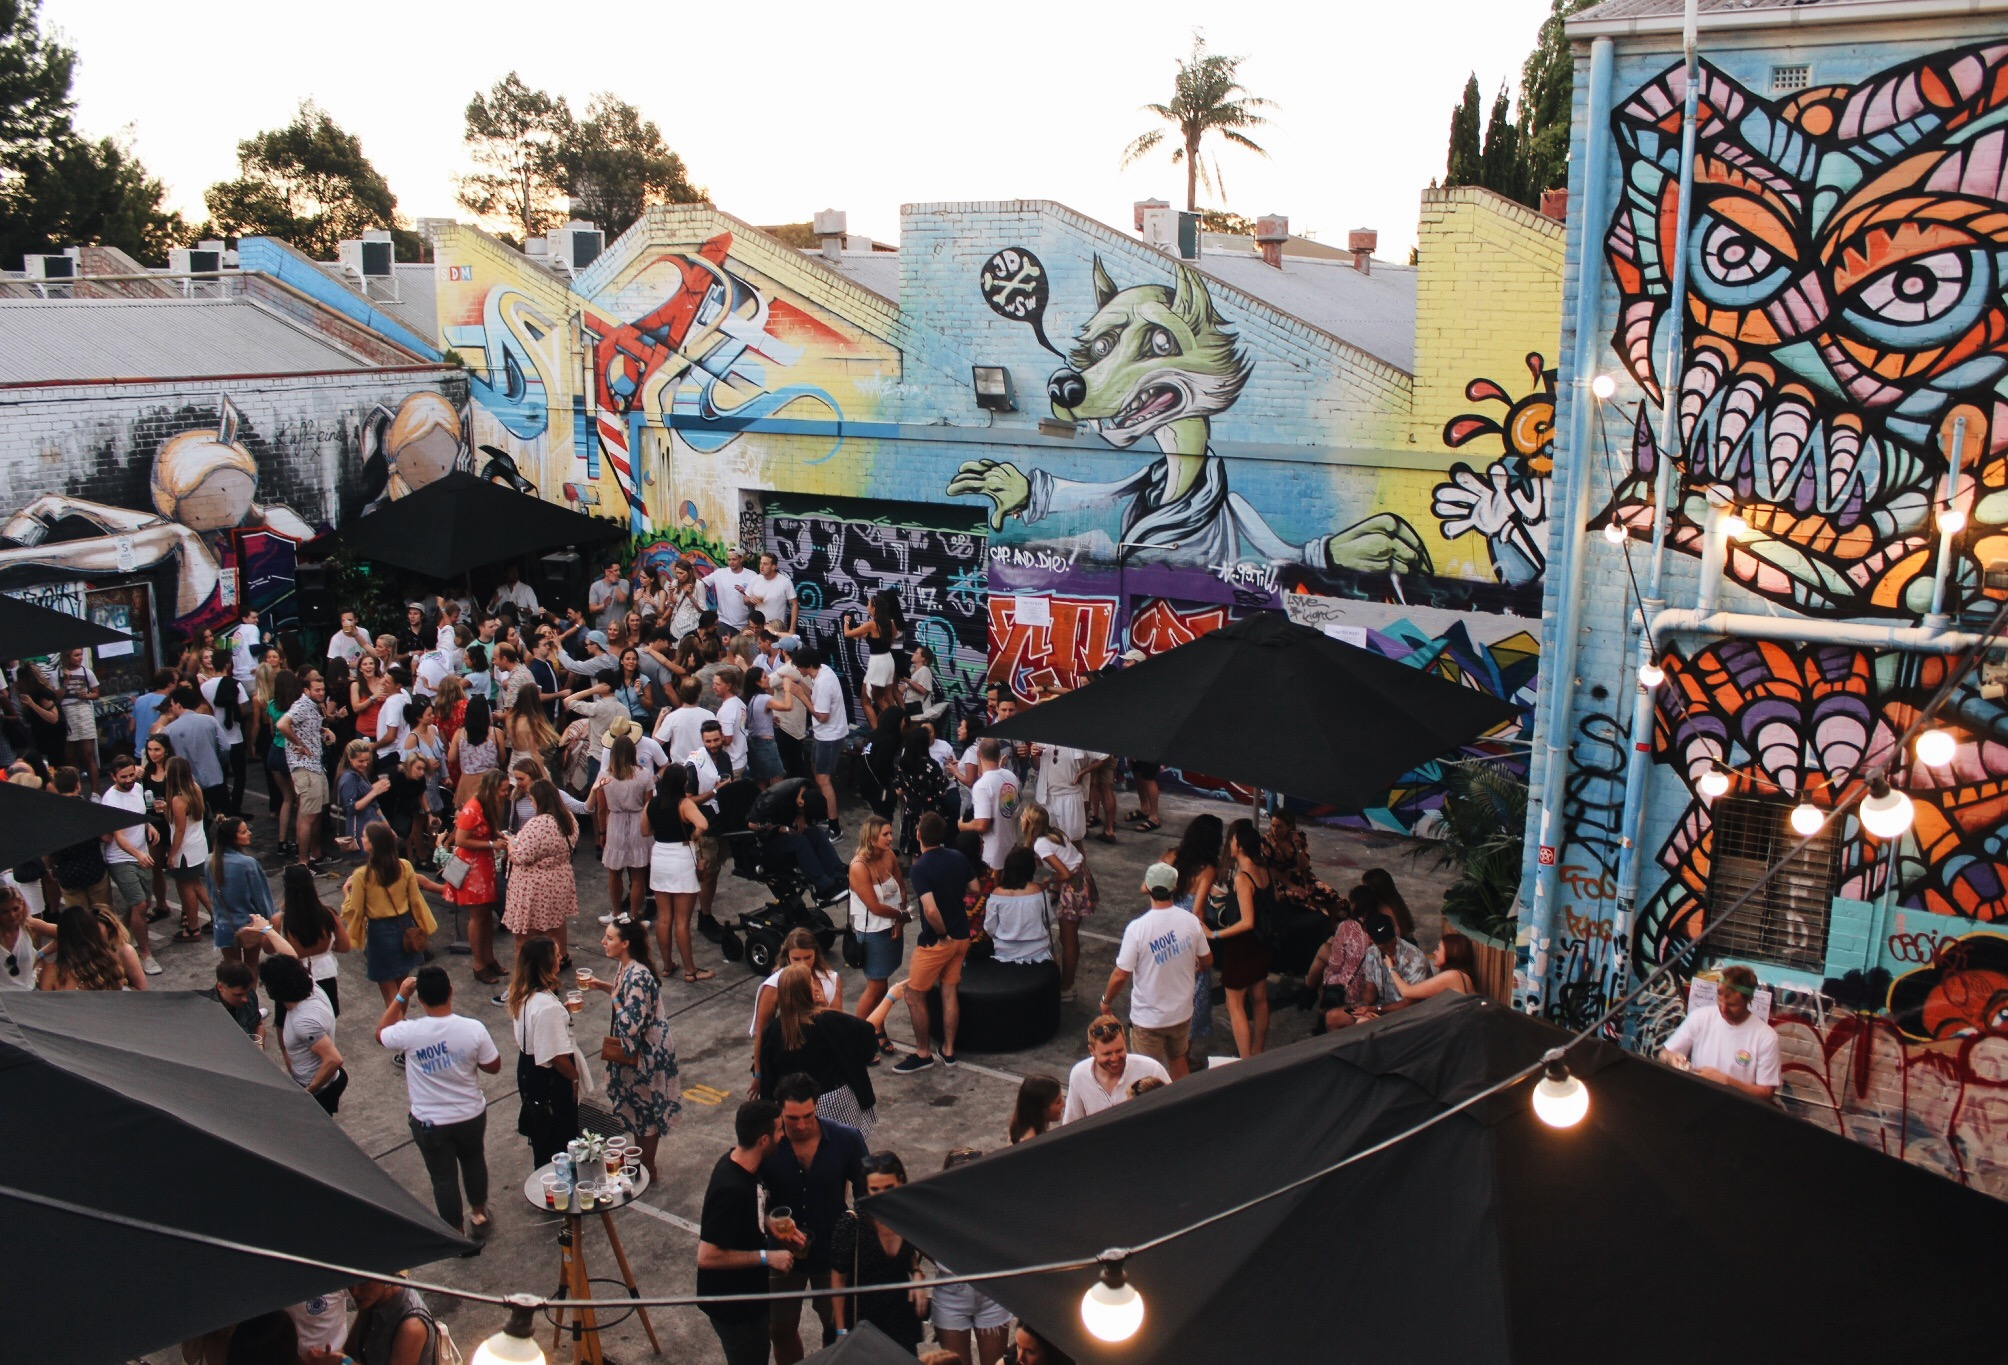 An aerial image of an outdoor party in a laneway with street art and fairy lights